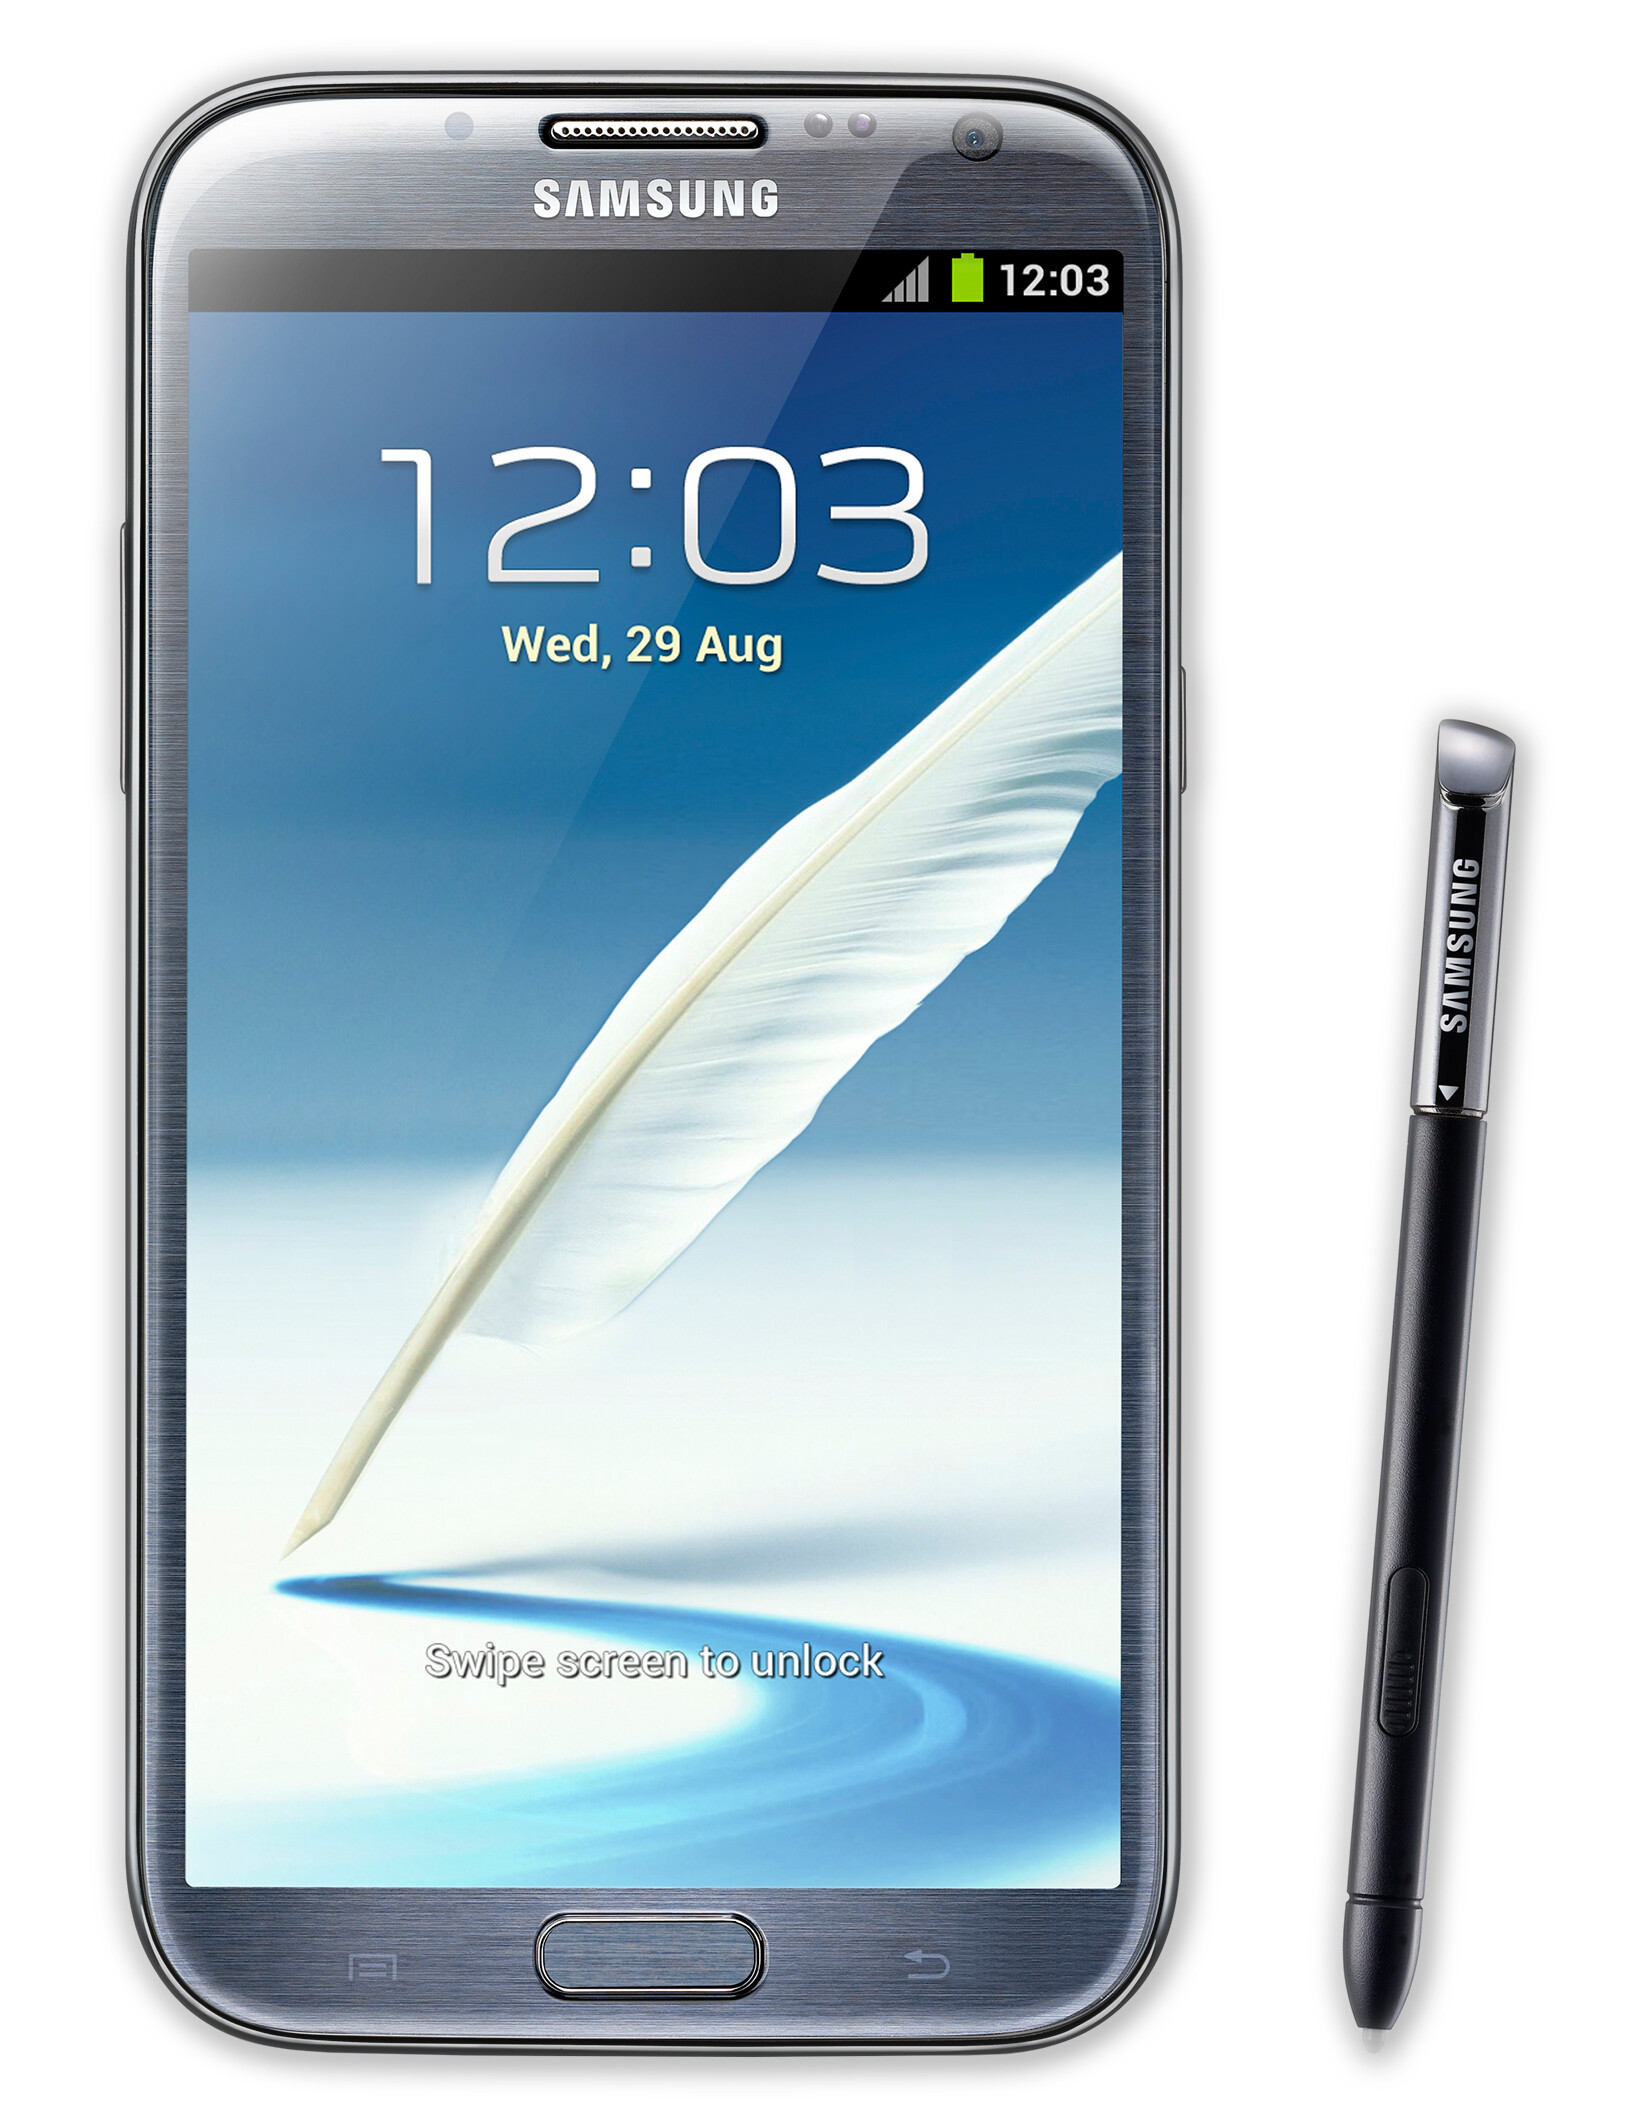 Samsung GALAXY Note II US Cellular specs